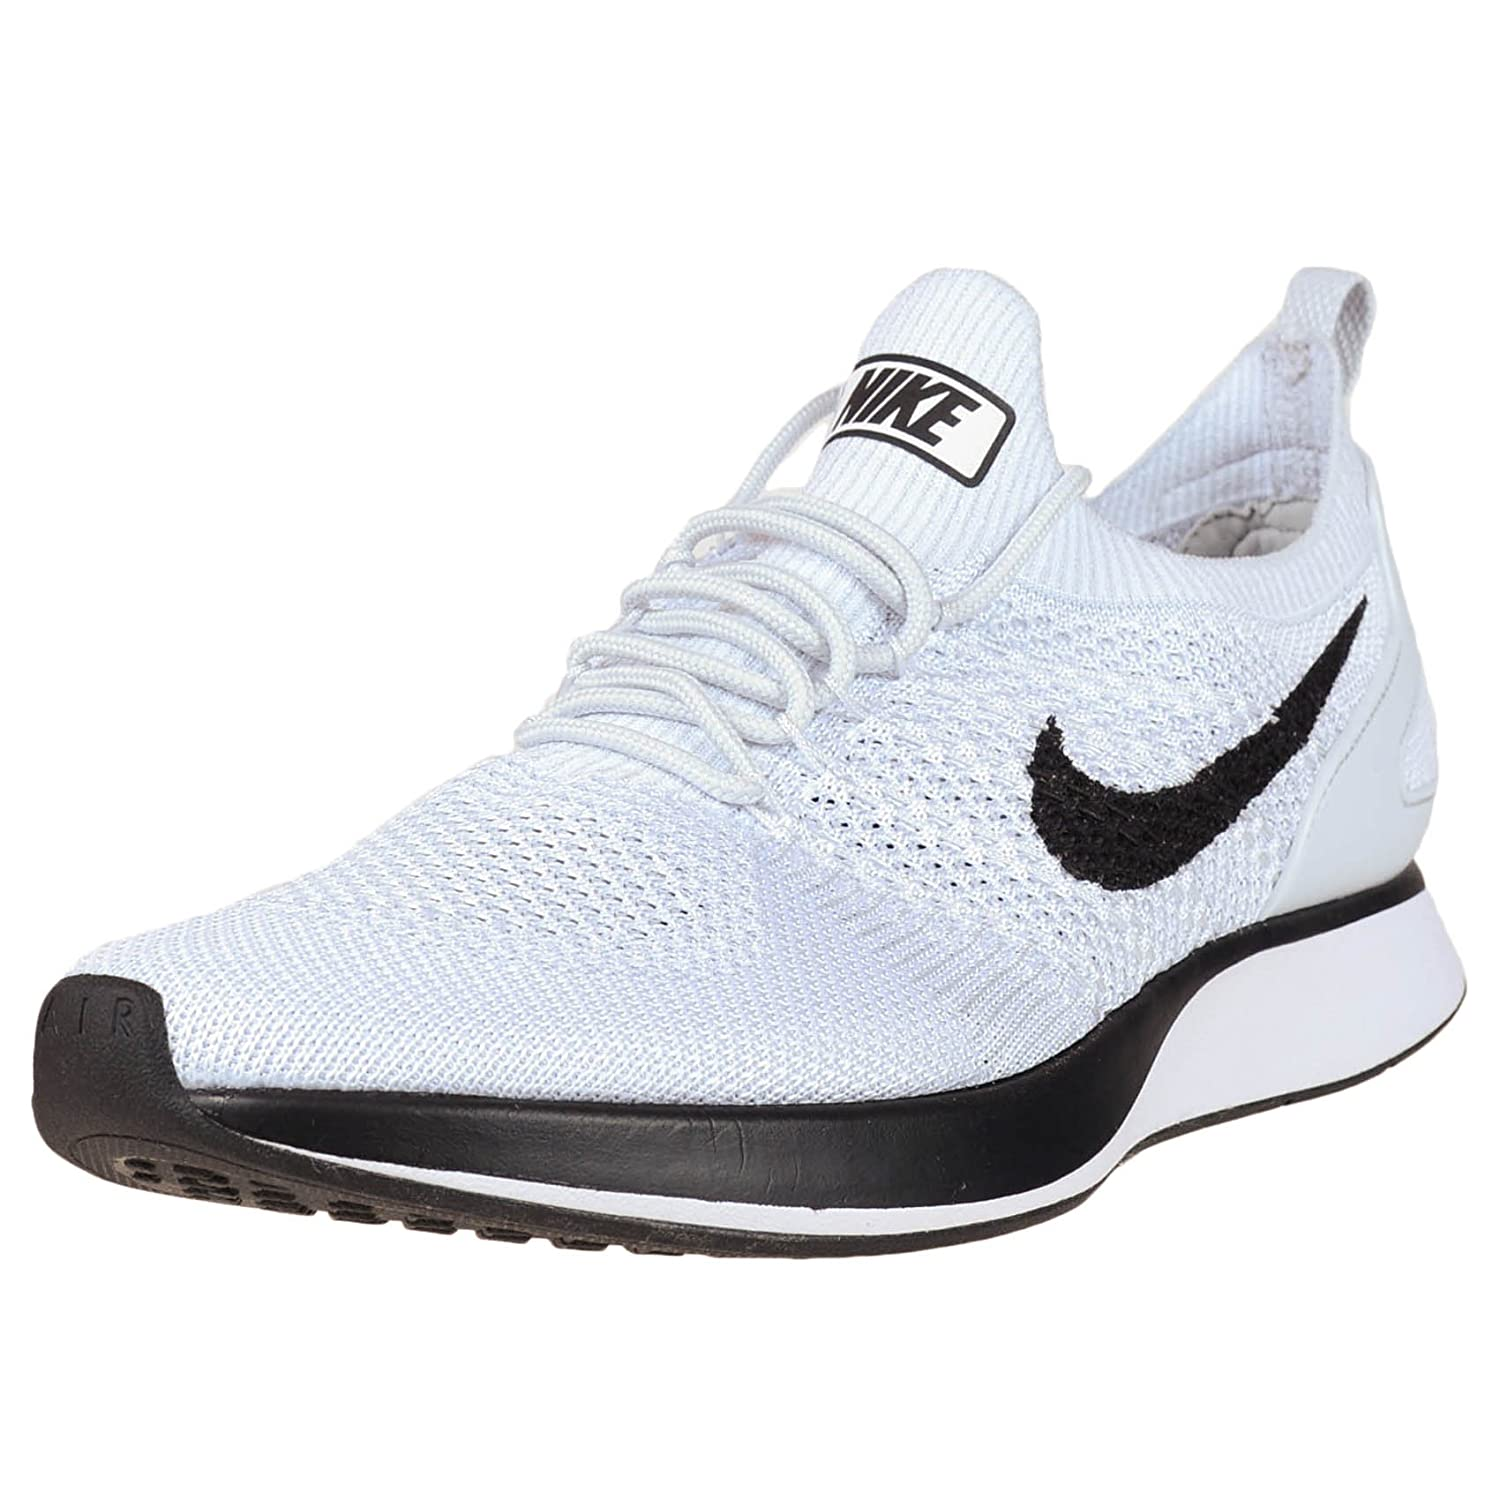 40729cbe7c7 Nike Men Air Zoom Mariah Flyknit Racer Pure Platinum White Size 11. 5 US   Buy Online at Low Prices in India - Amazon.in